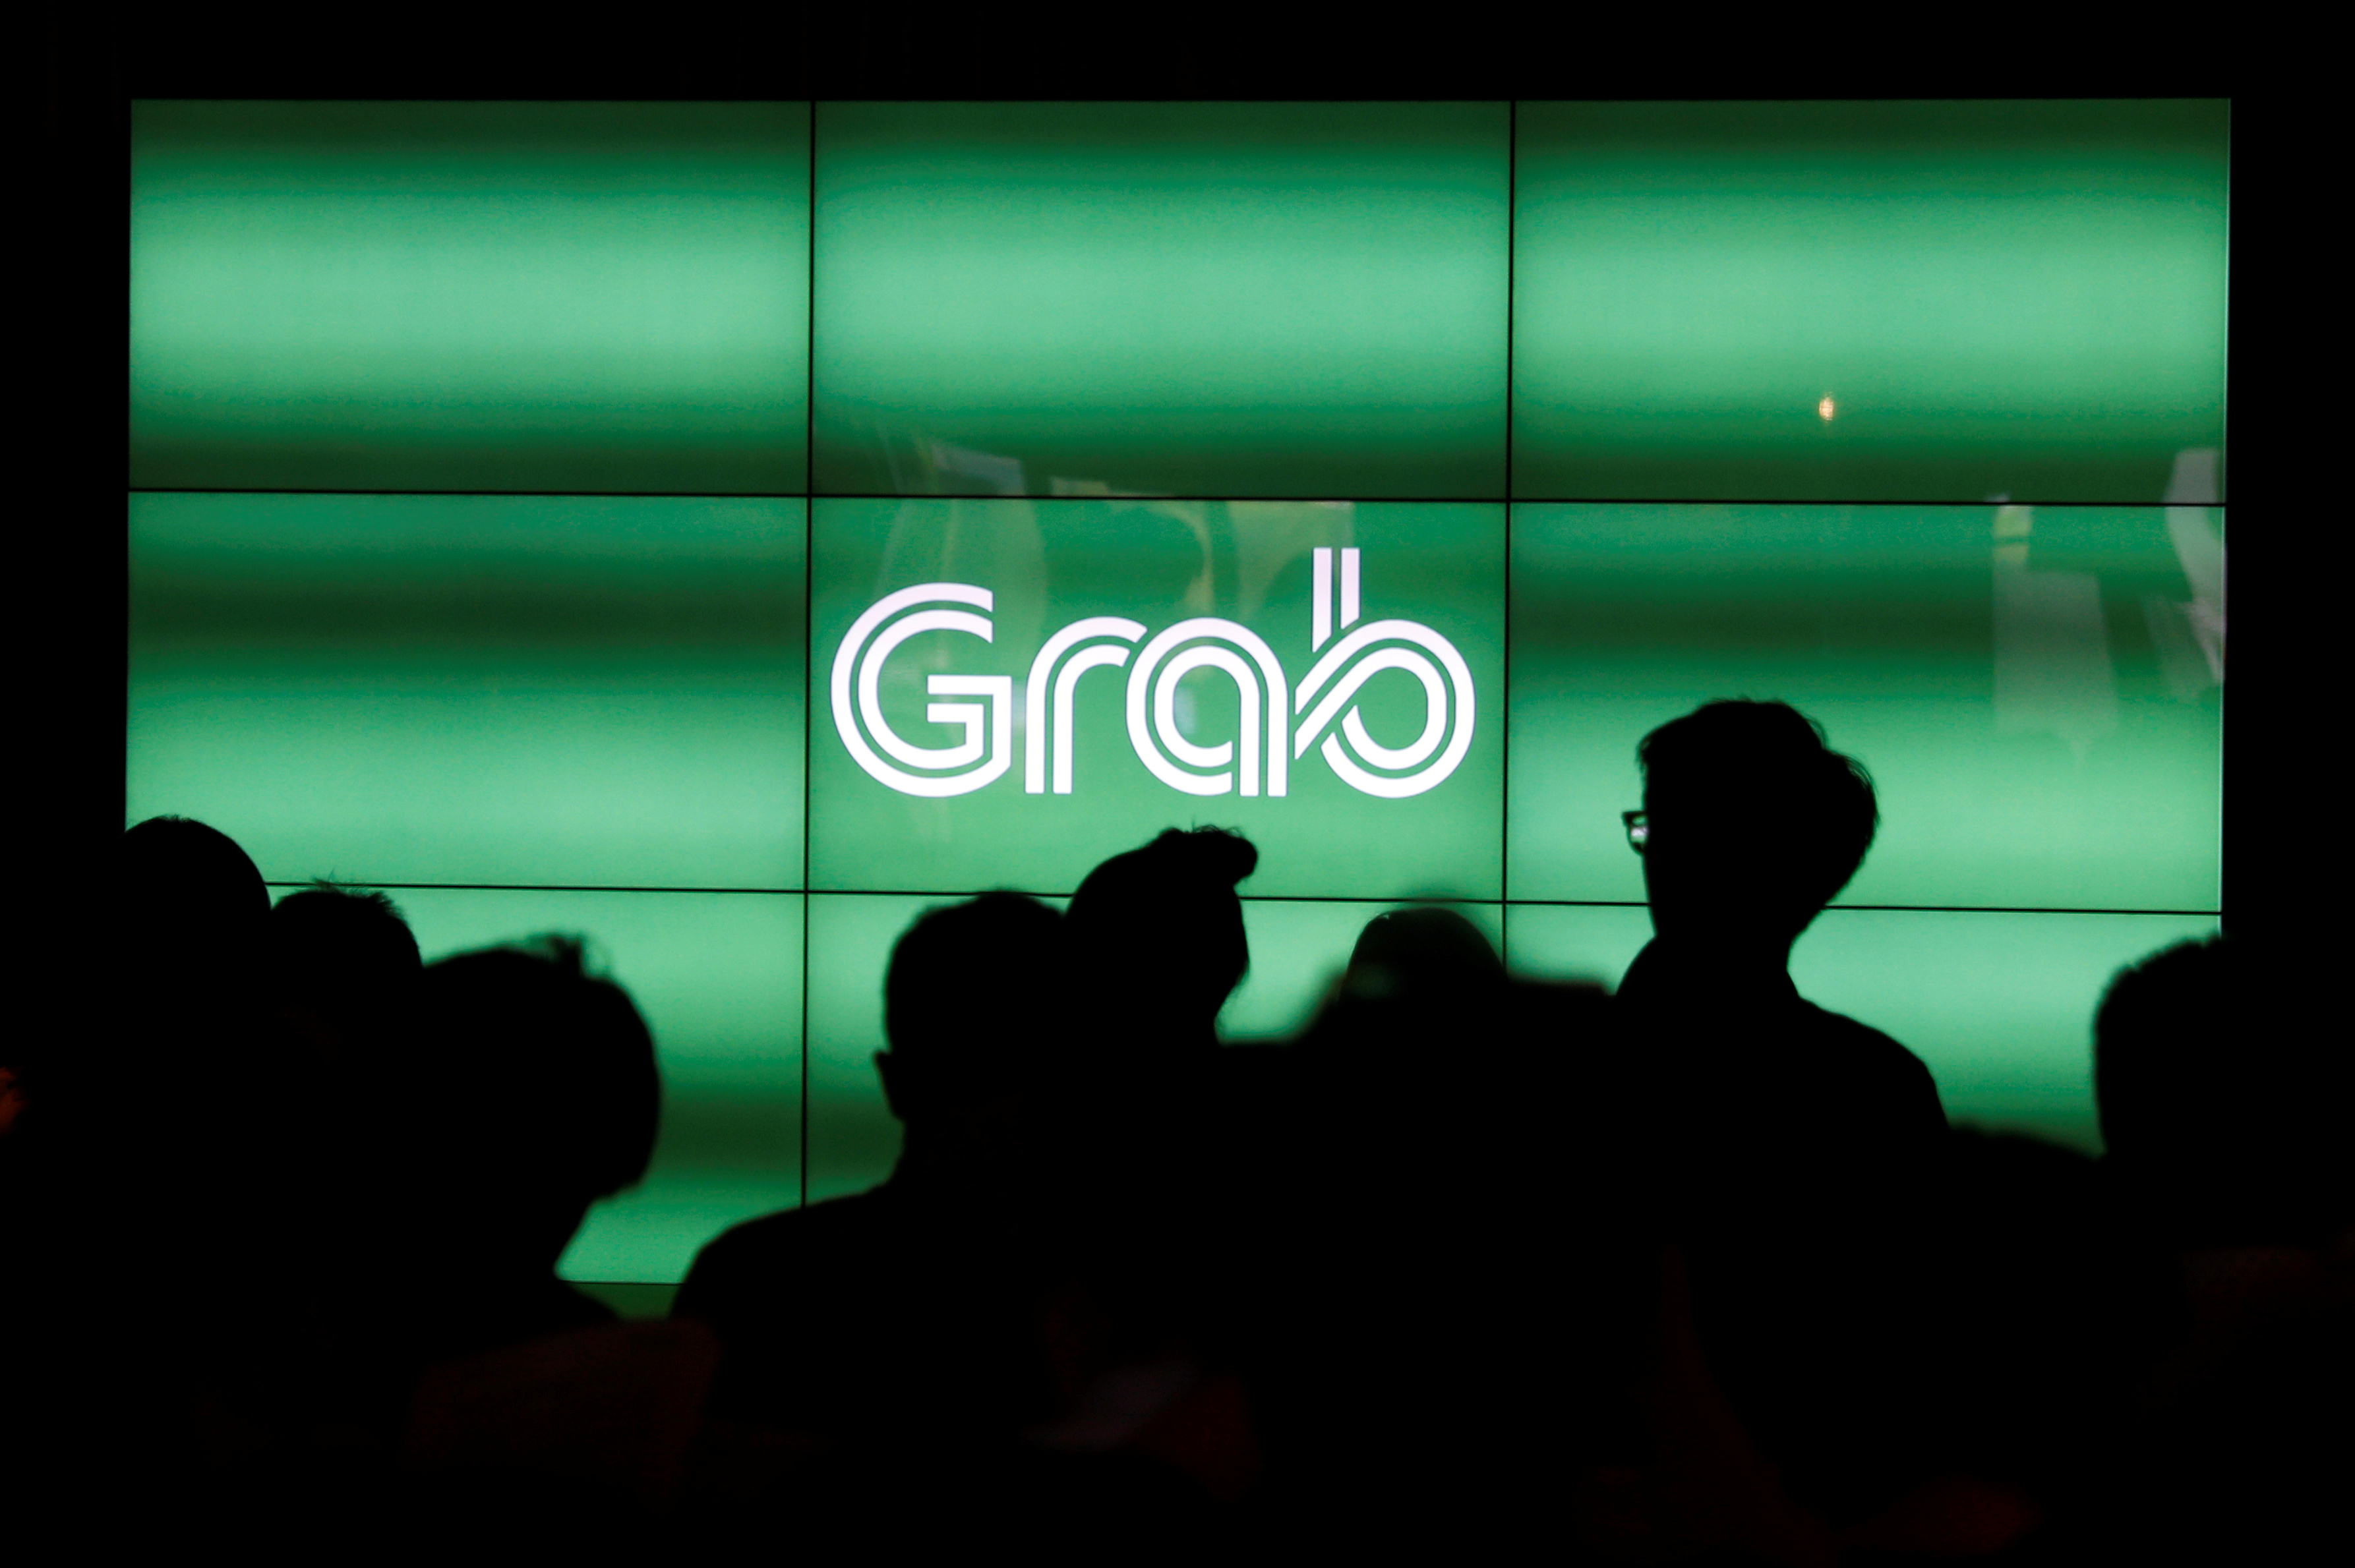 People wait for the start of Grab's fifth anniversary news conference in Singapore June 6, 2017. REUTERS/Edgar Su